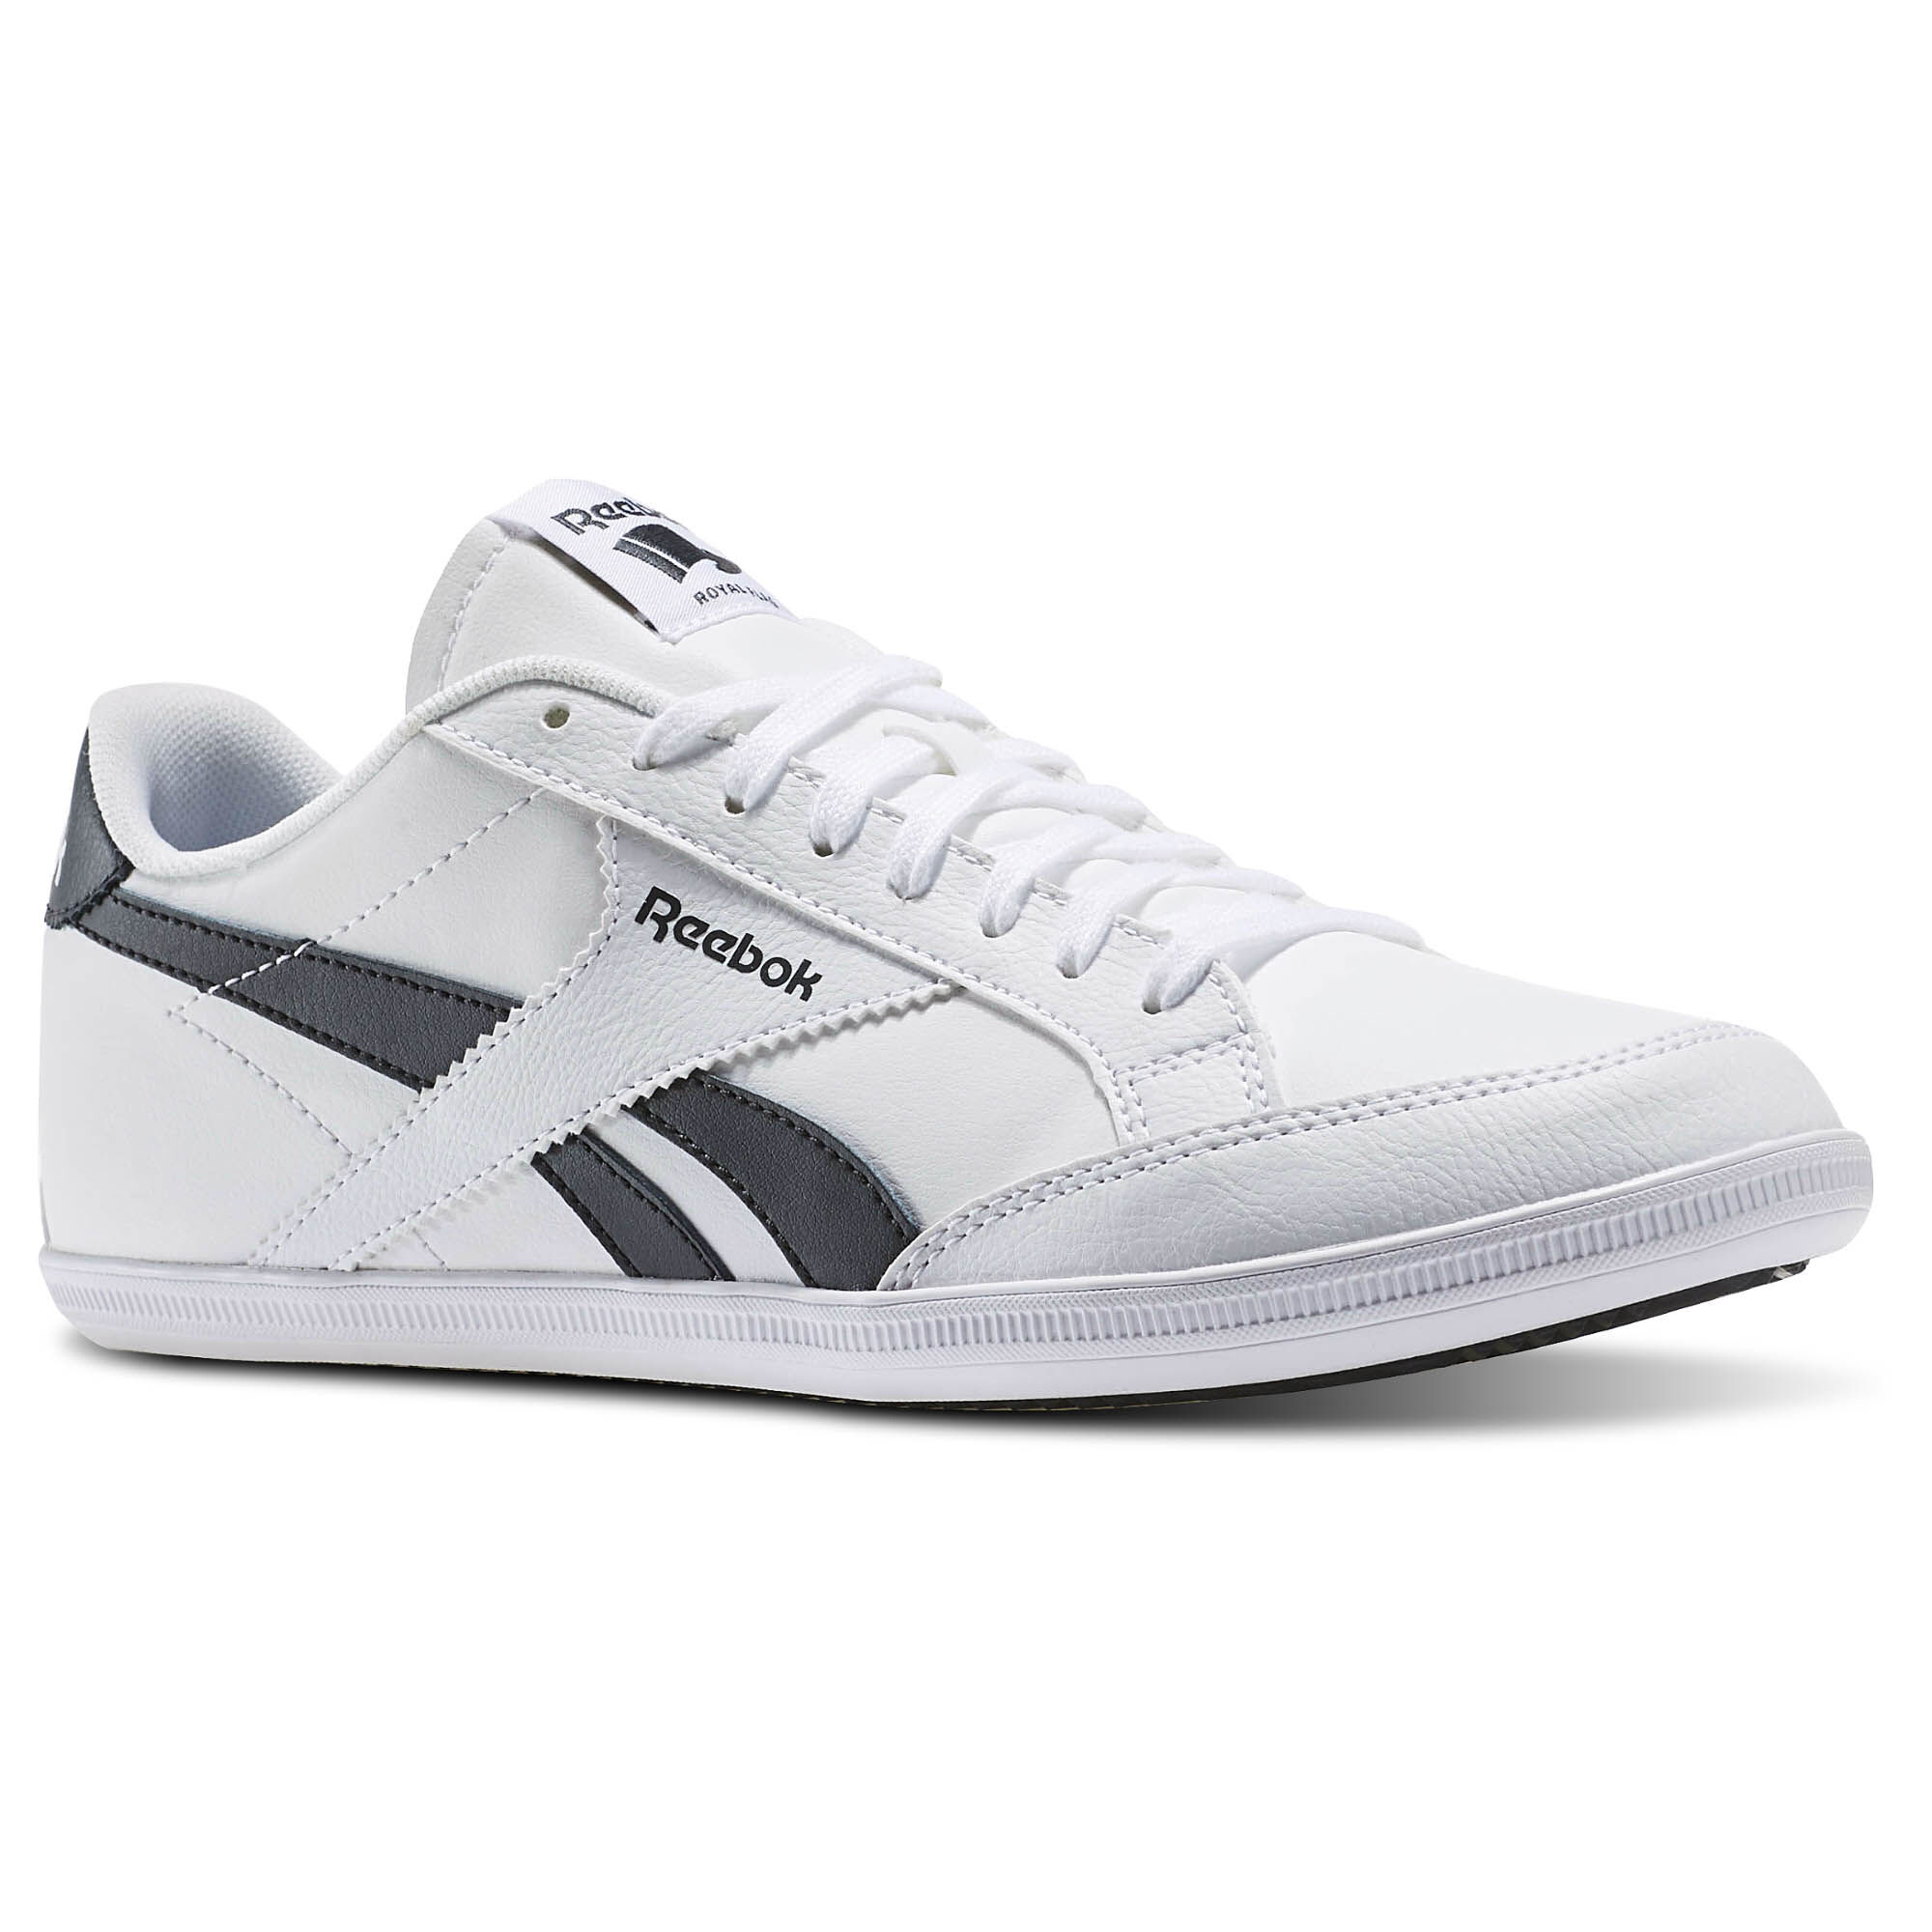 Reebok - Reebok Royal Transport S White/Nocturnal Grey AR2550